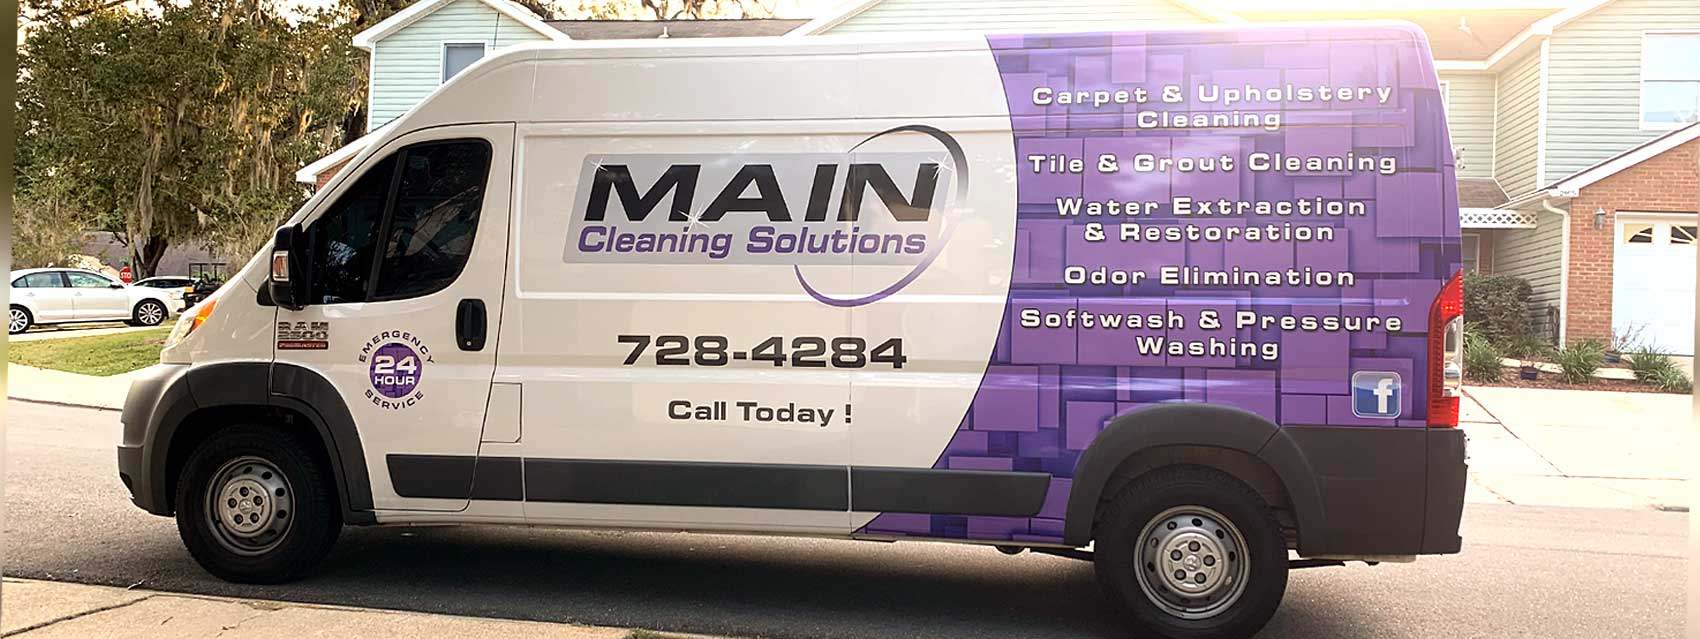 Main Cleaning Van